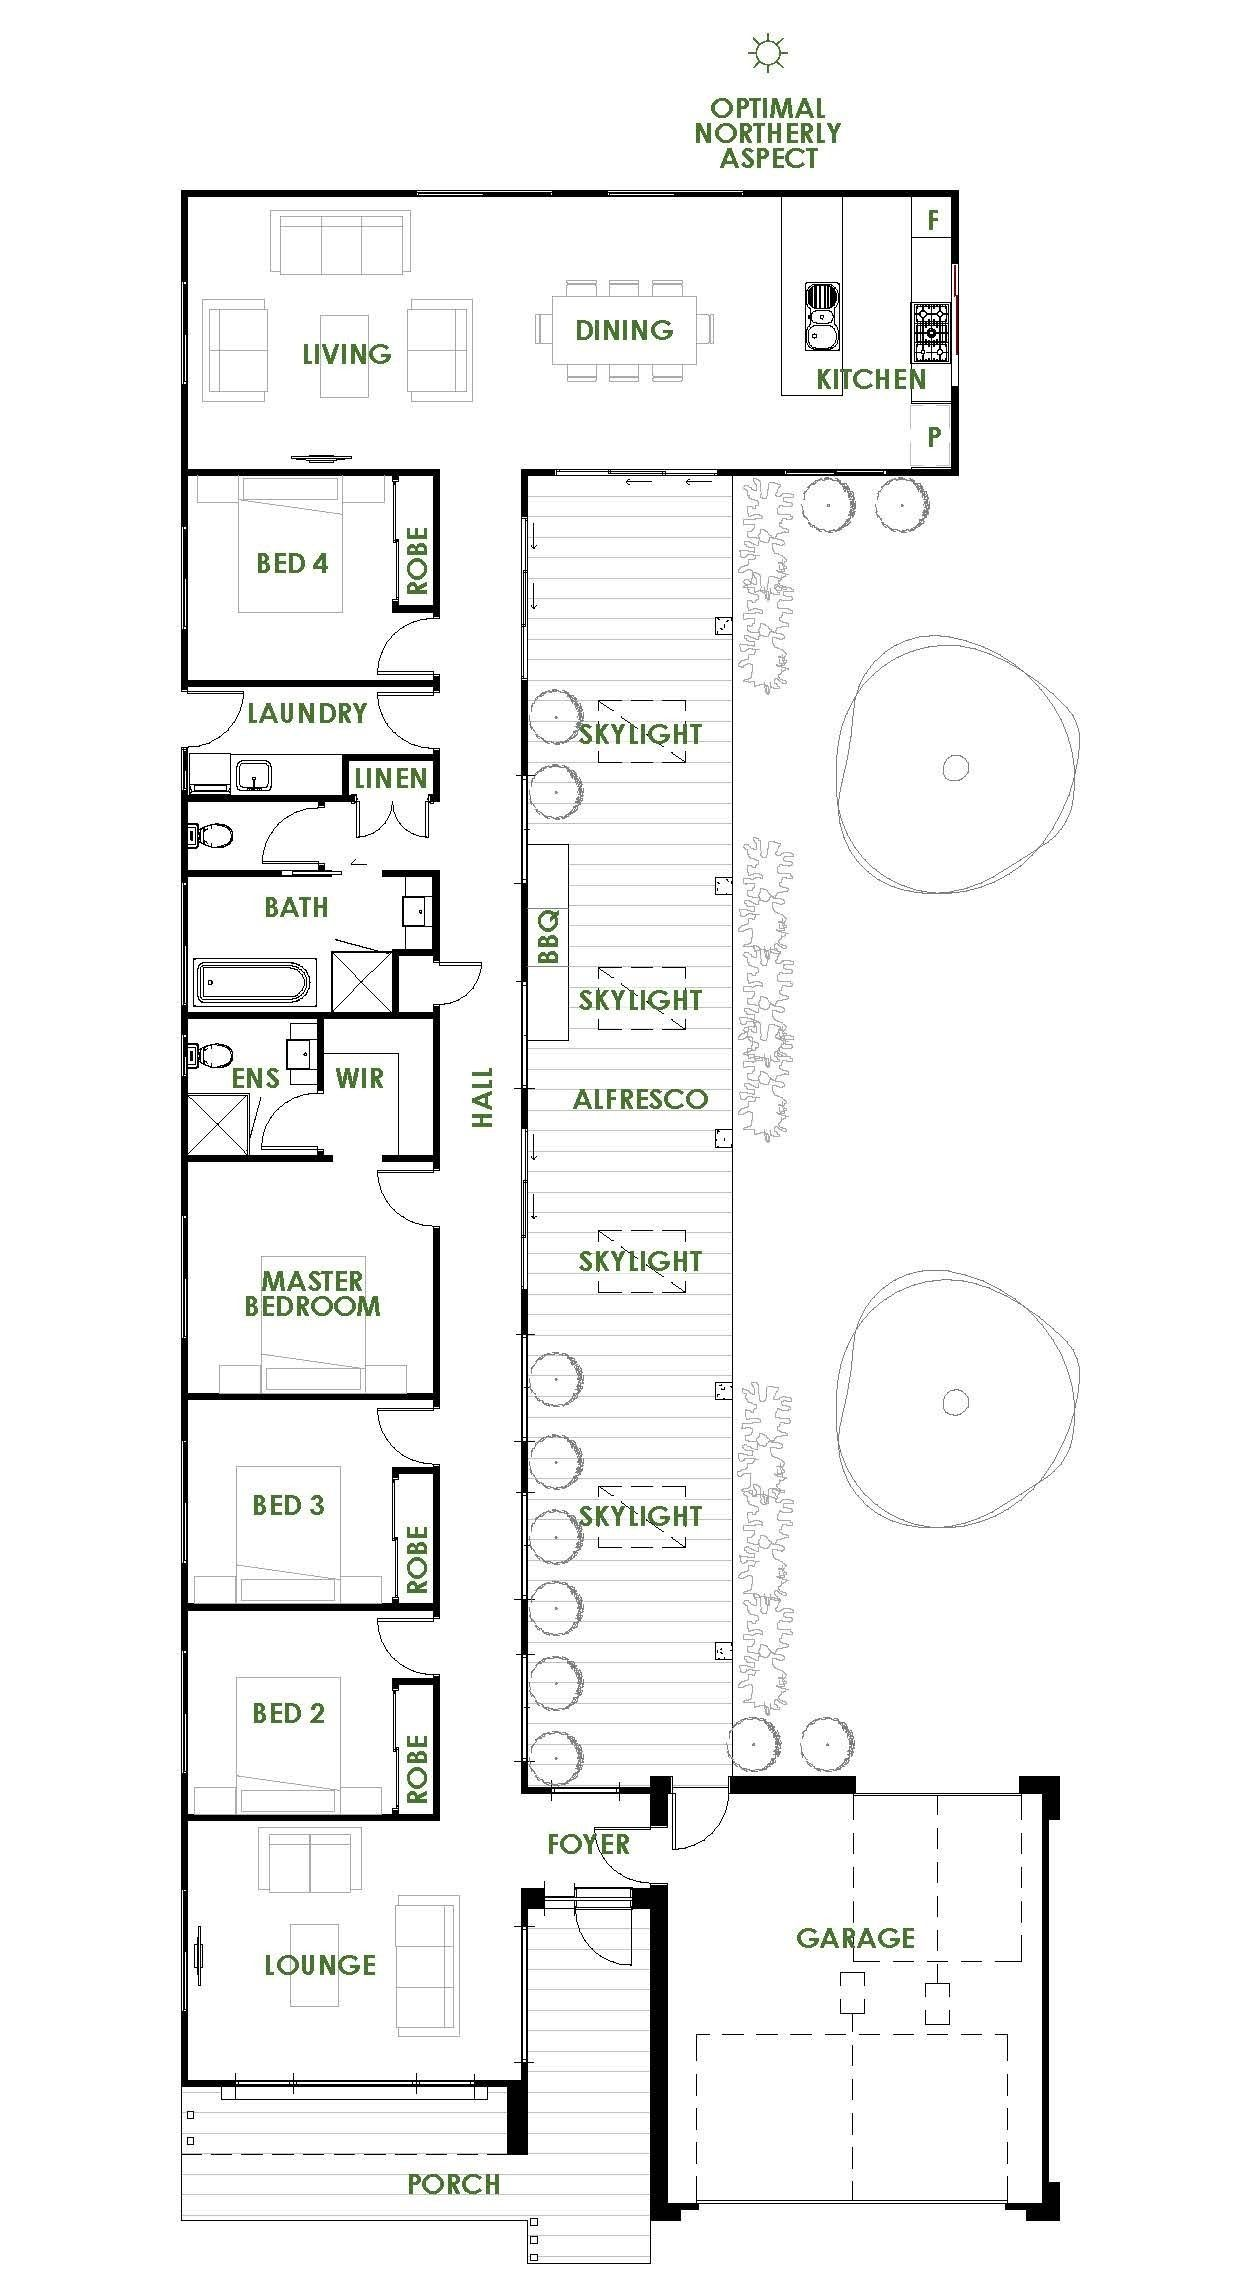 19 Small Energy Efficient House Plans The Newport Offers The Very Best In Energy Efficient Ho Energy Efficient House Plans Solar House Plans Eco House Plans